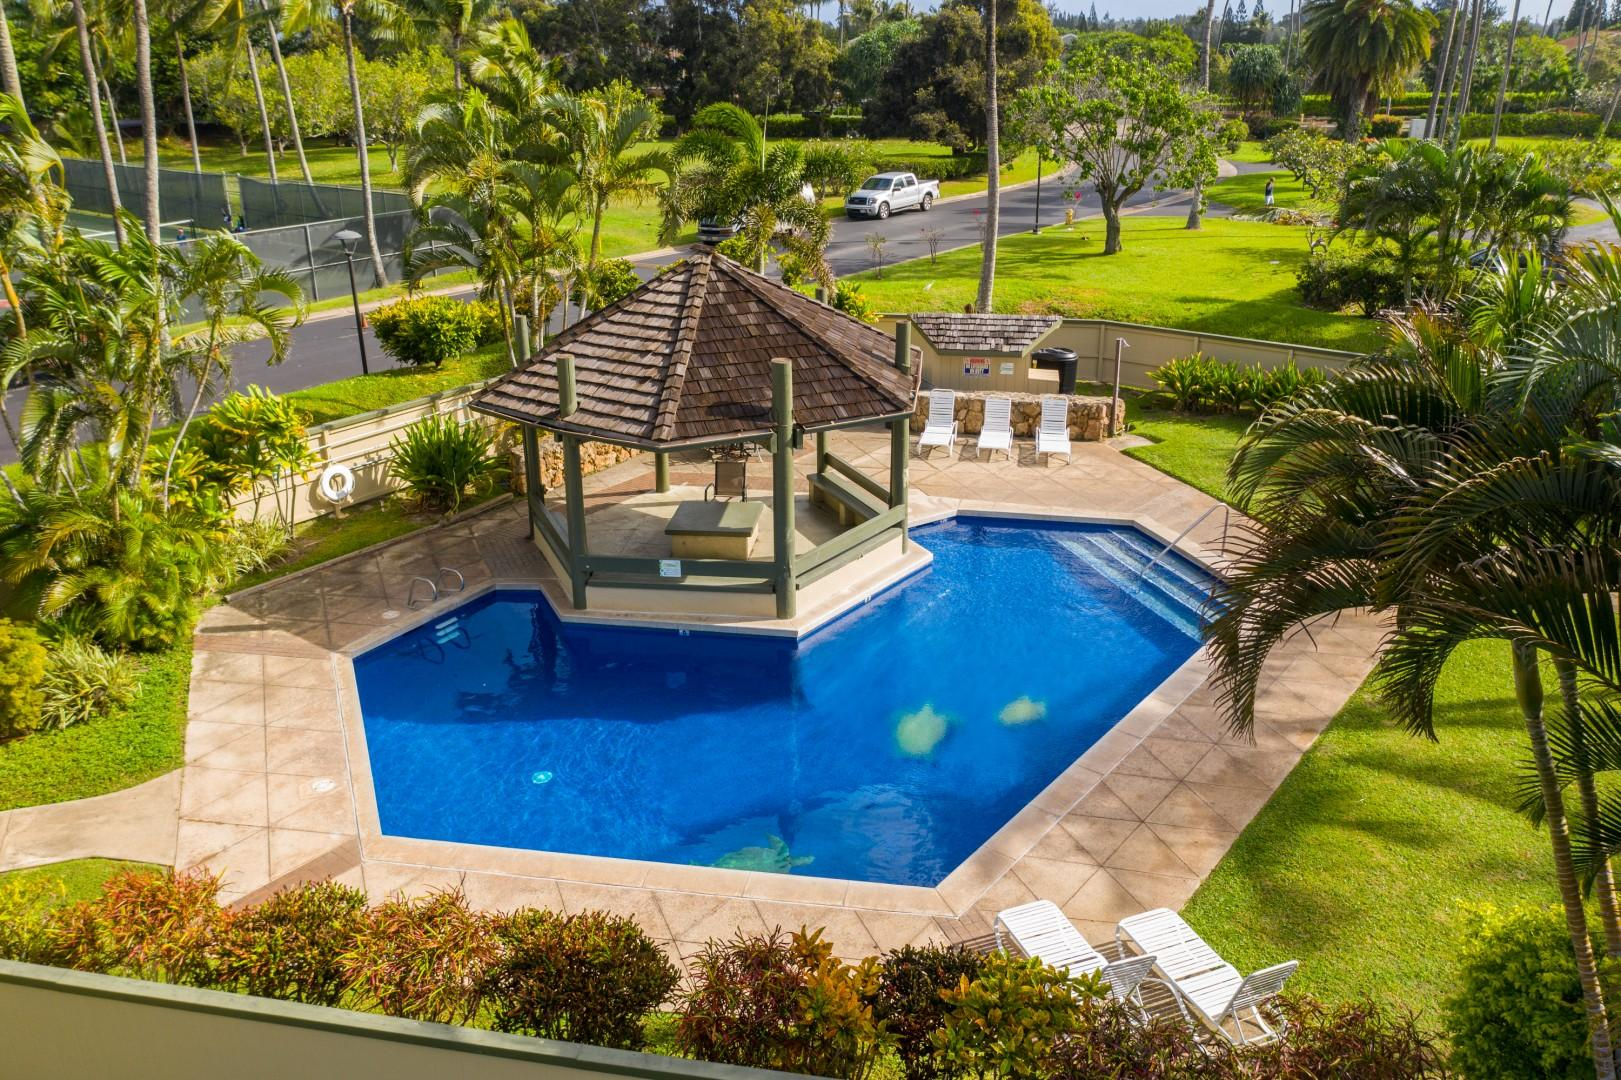 Guests enjoy shared pool access